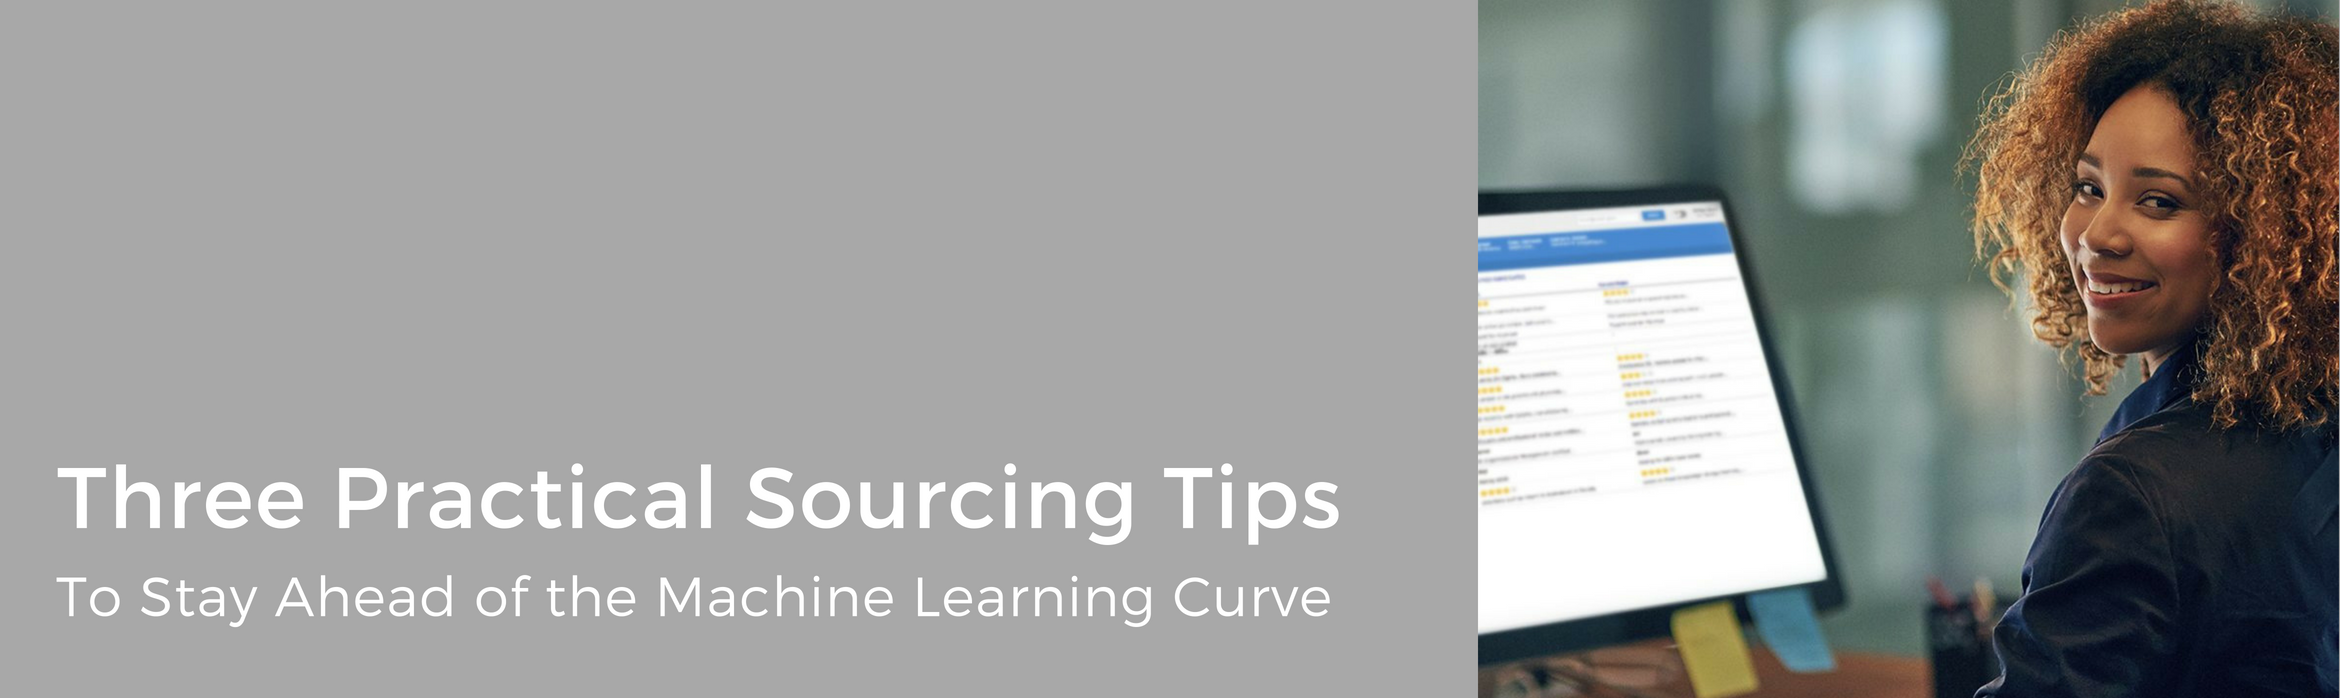 Three Practical Sourcing Tips To Stay Ahead of the Machine Learning Curve